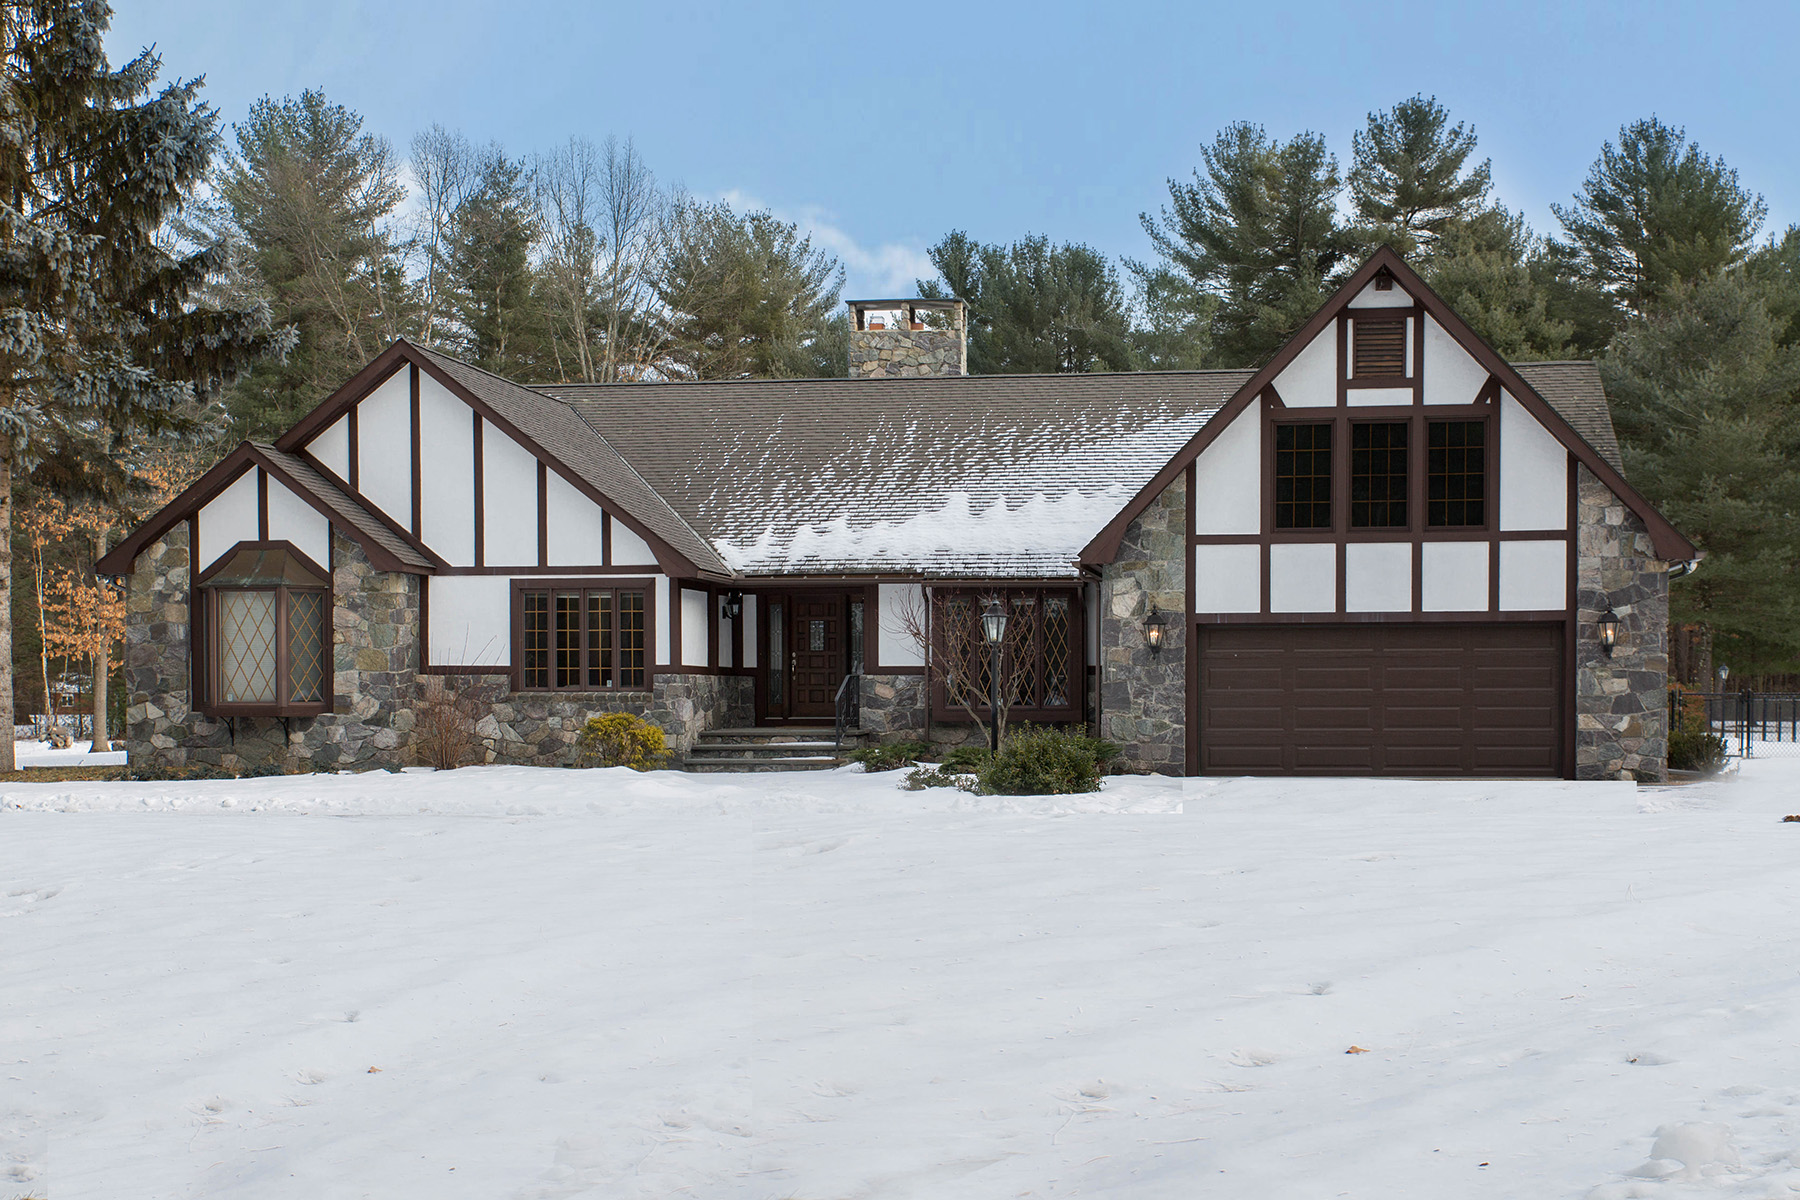 Single Family Home for Sale at Private Ranch Tudor Home on 13 Acres 2689 Route 9 Malta, New York 12020 United States